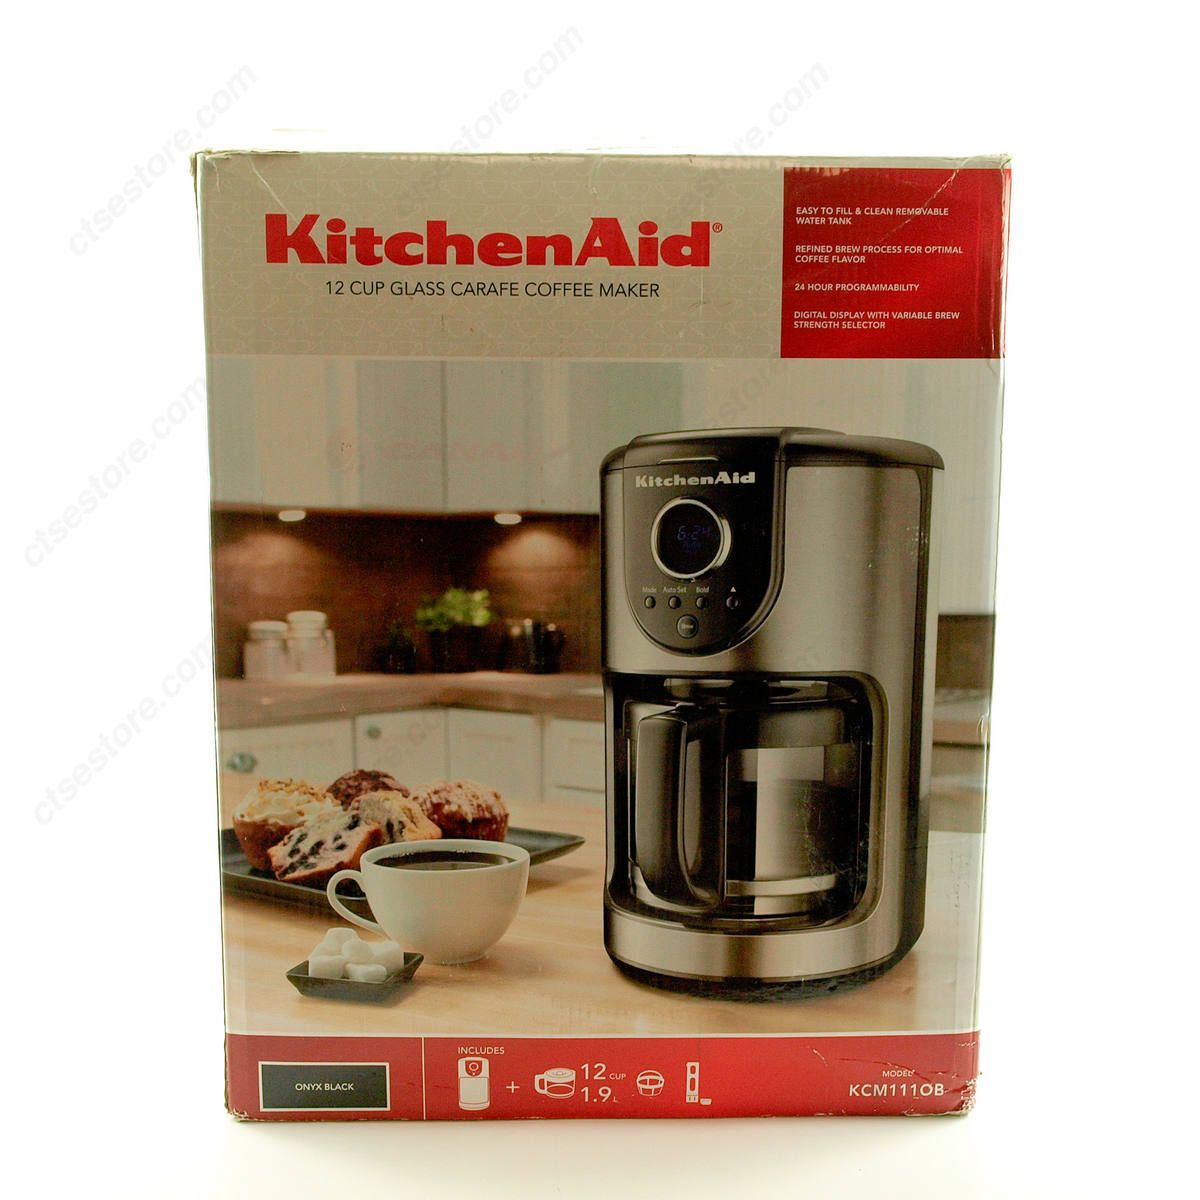 Kitchenaid 12 cup coffee maker photo - 1